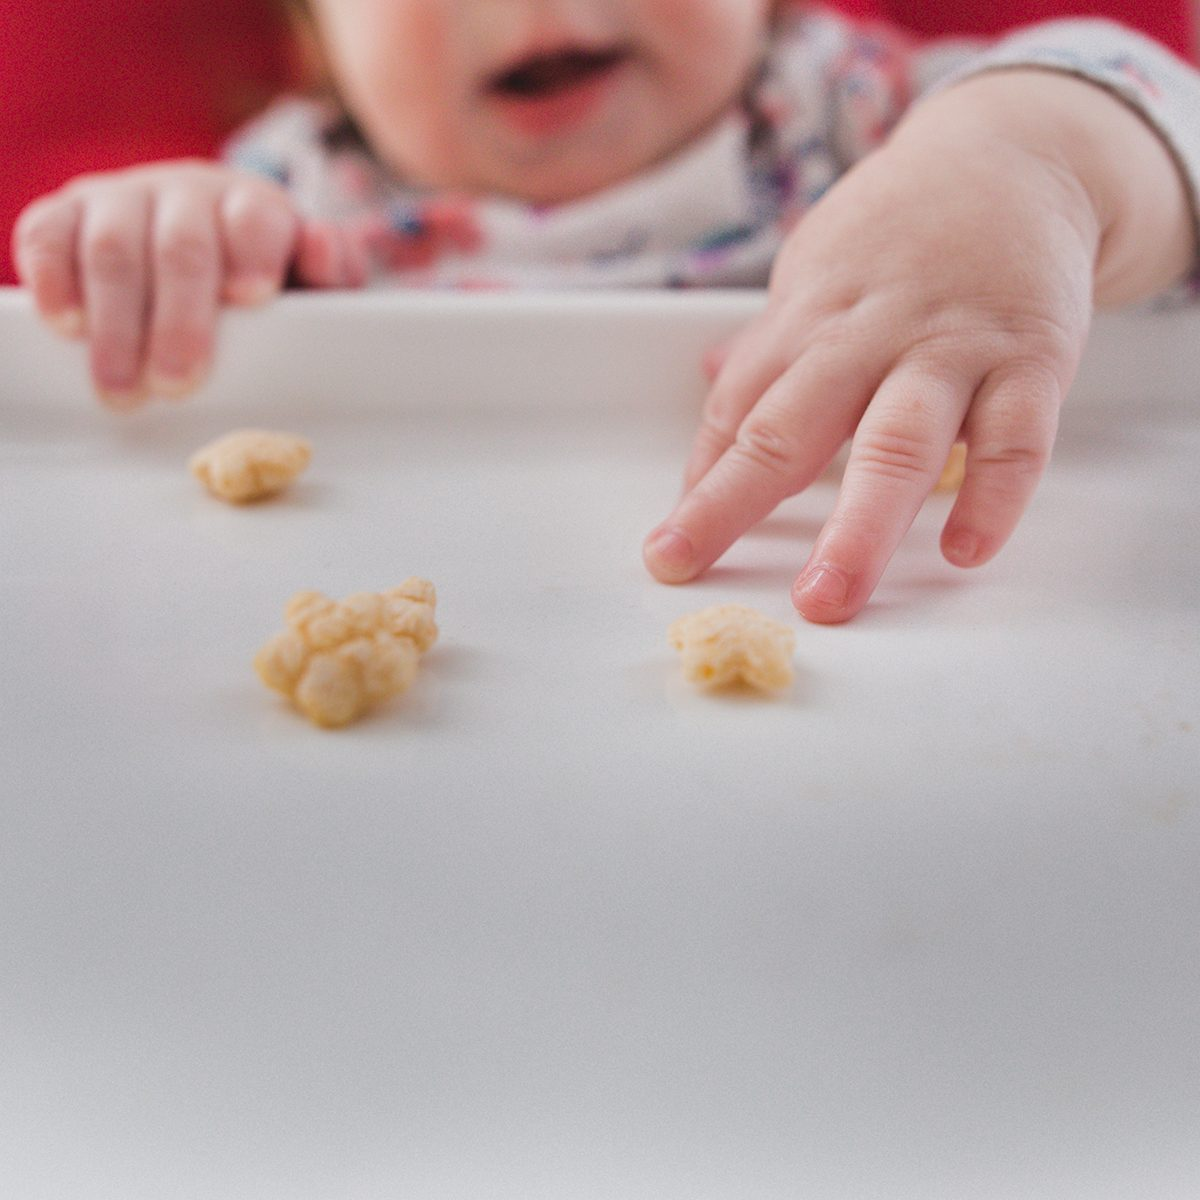 Baby girl sitting in high chair reaching for a cereal puff